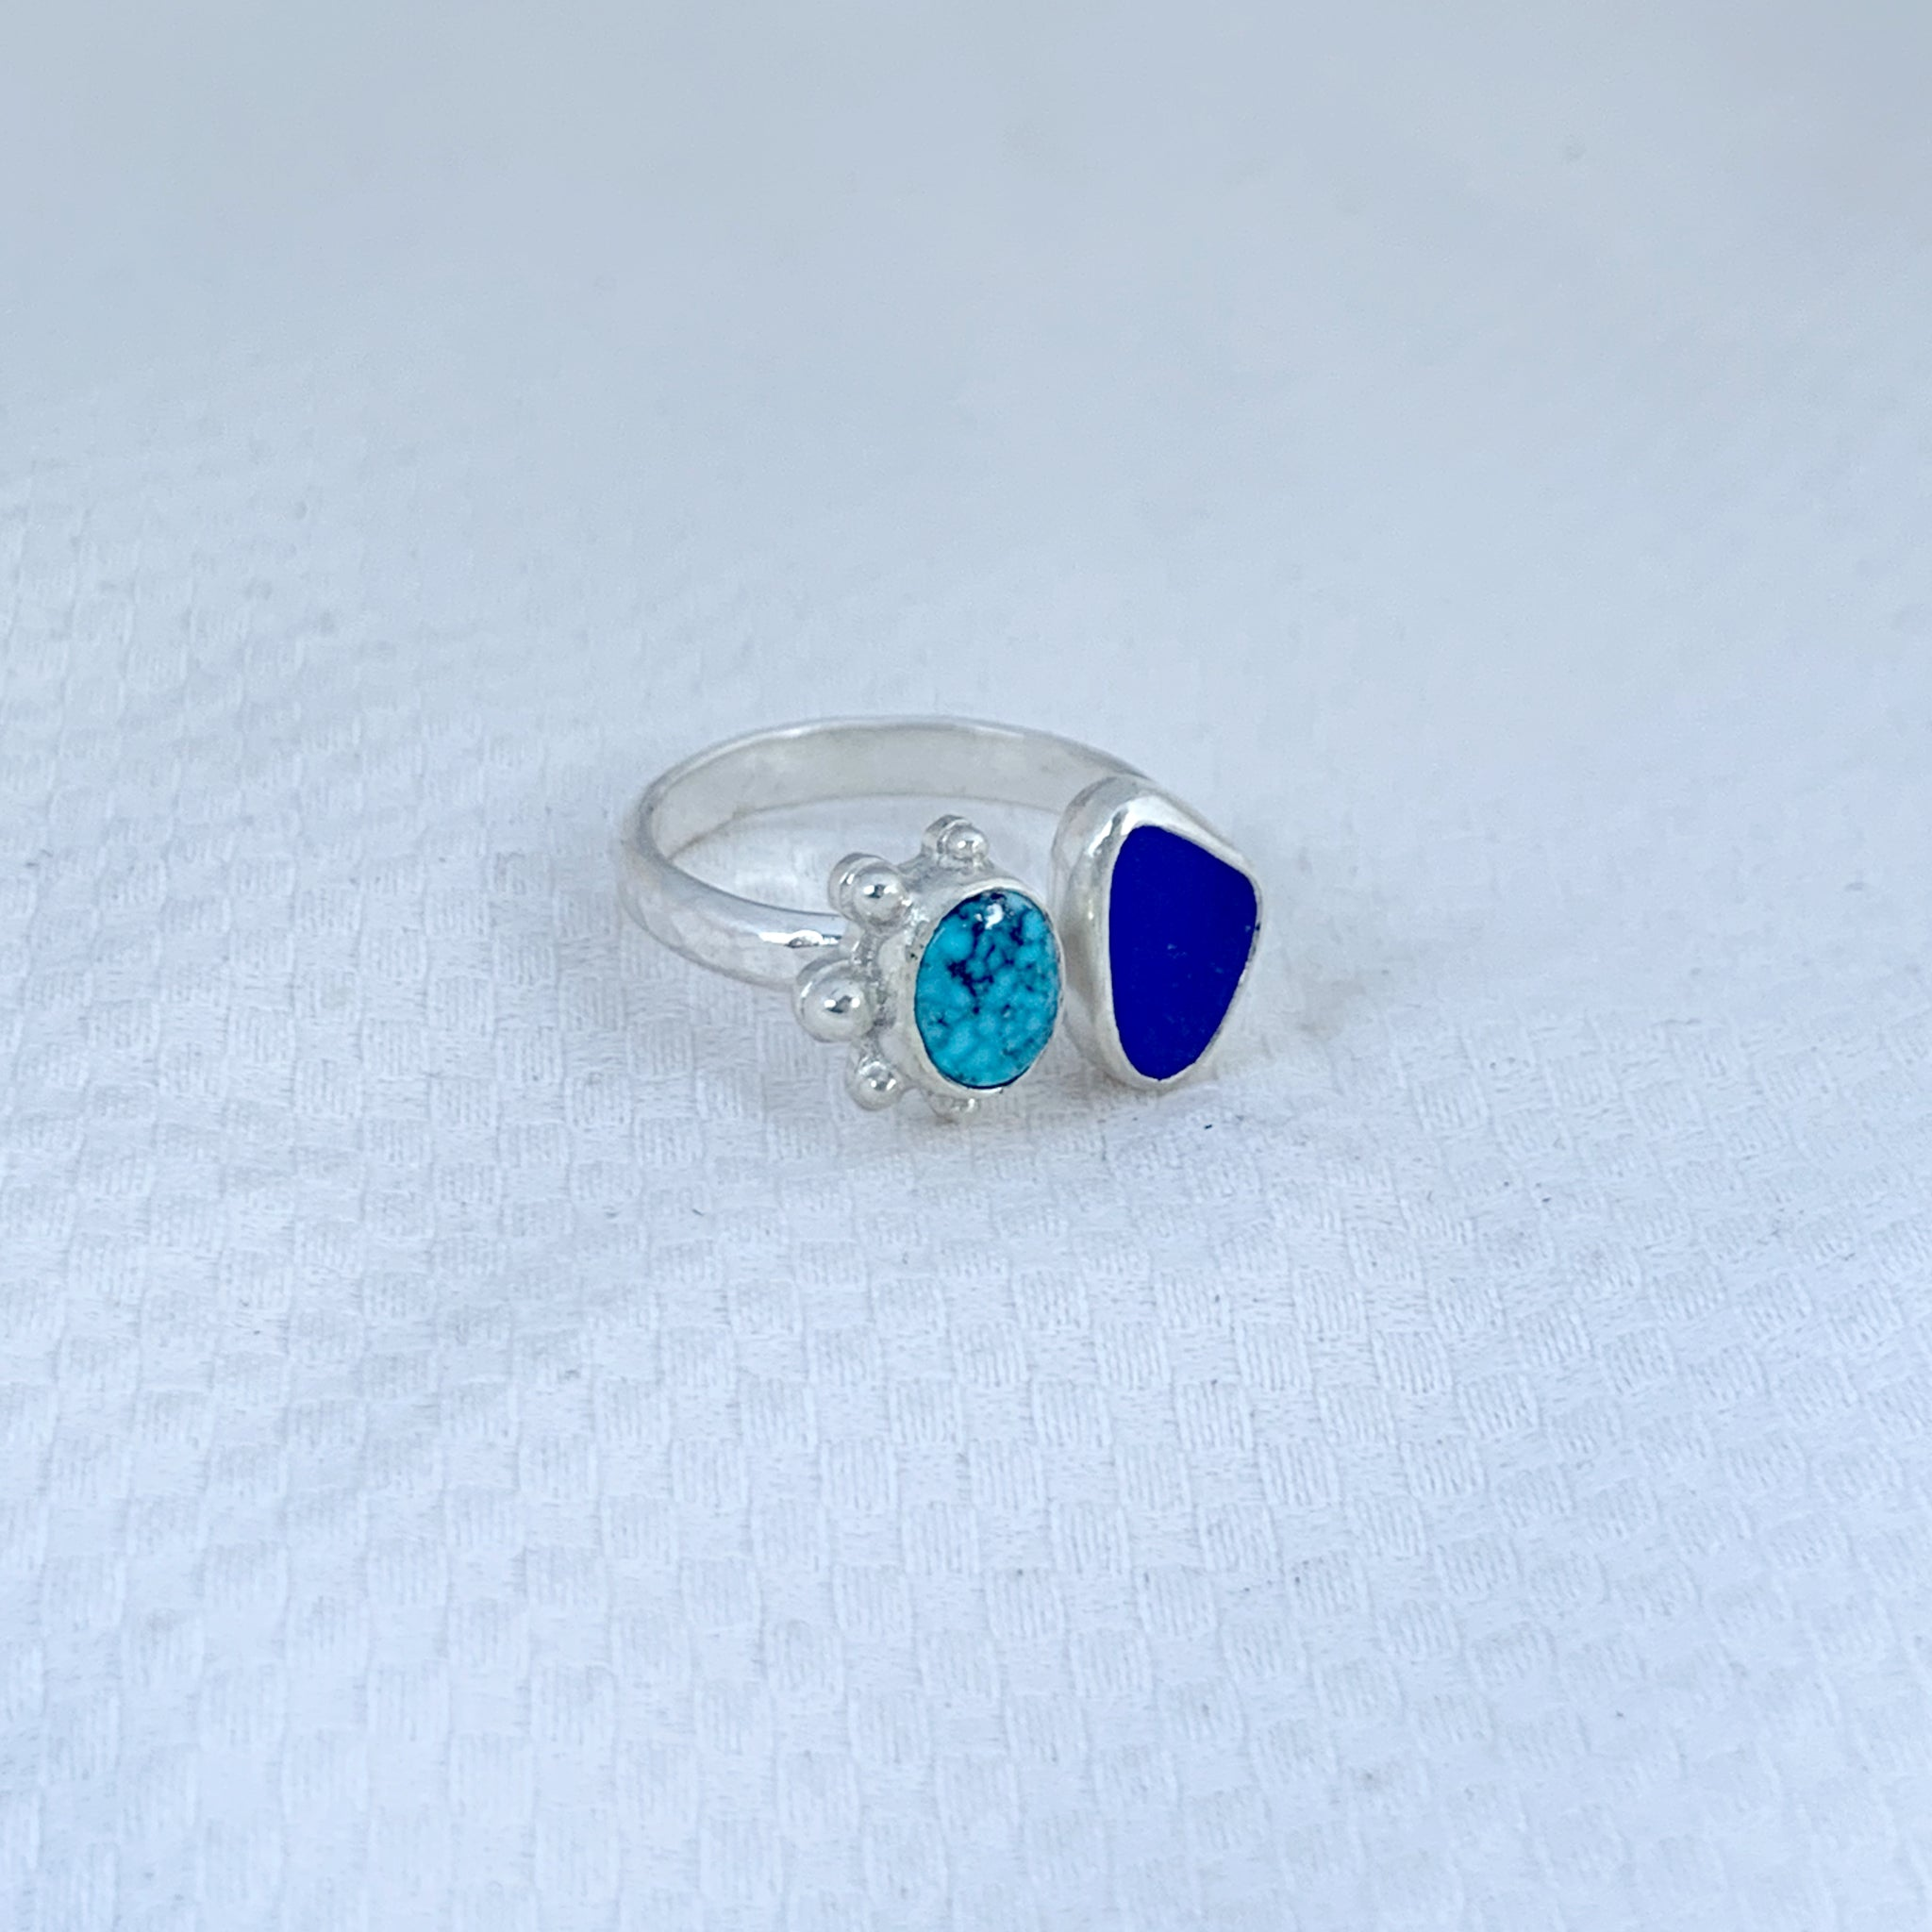 Two Treasures Ring with Turquoise + Seaglass Size 6 1/2